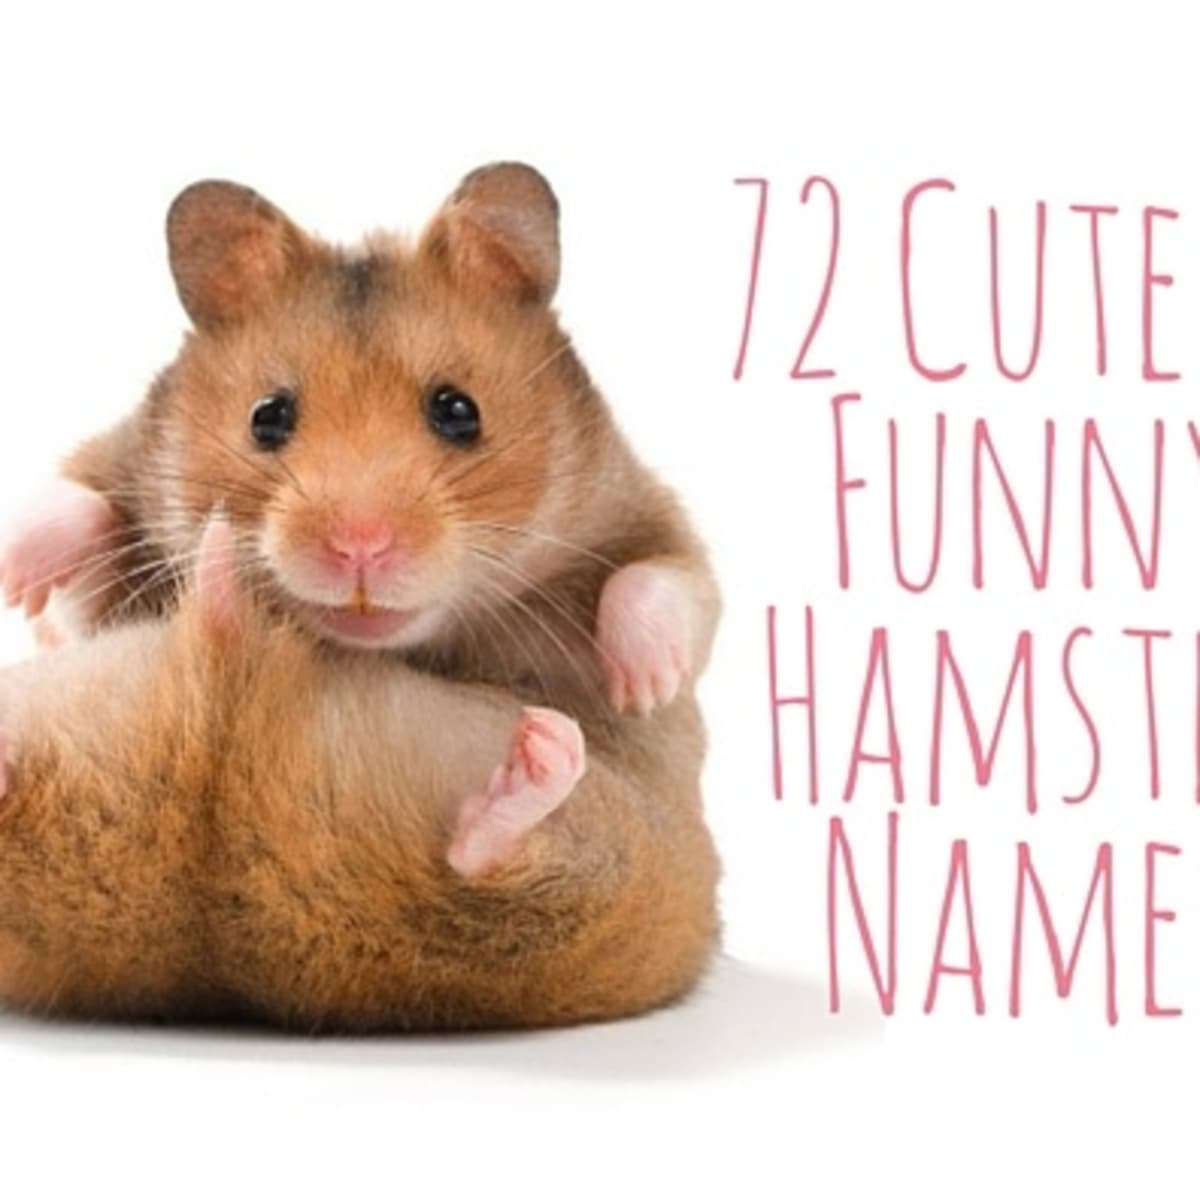 Sweet names to call a boy